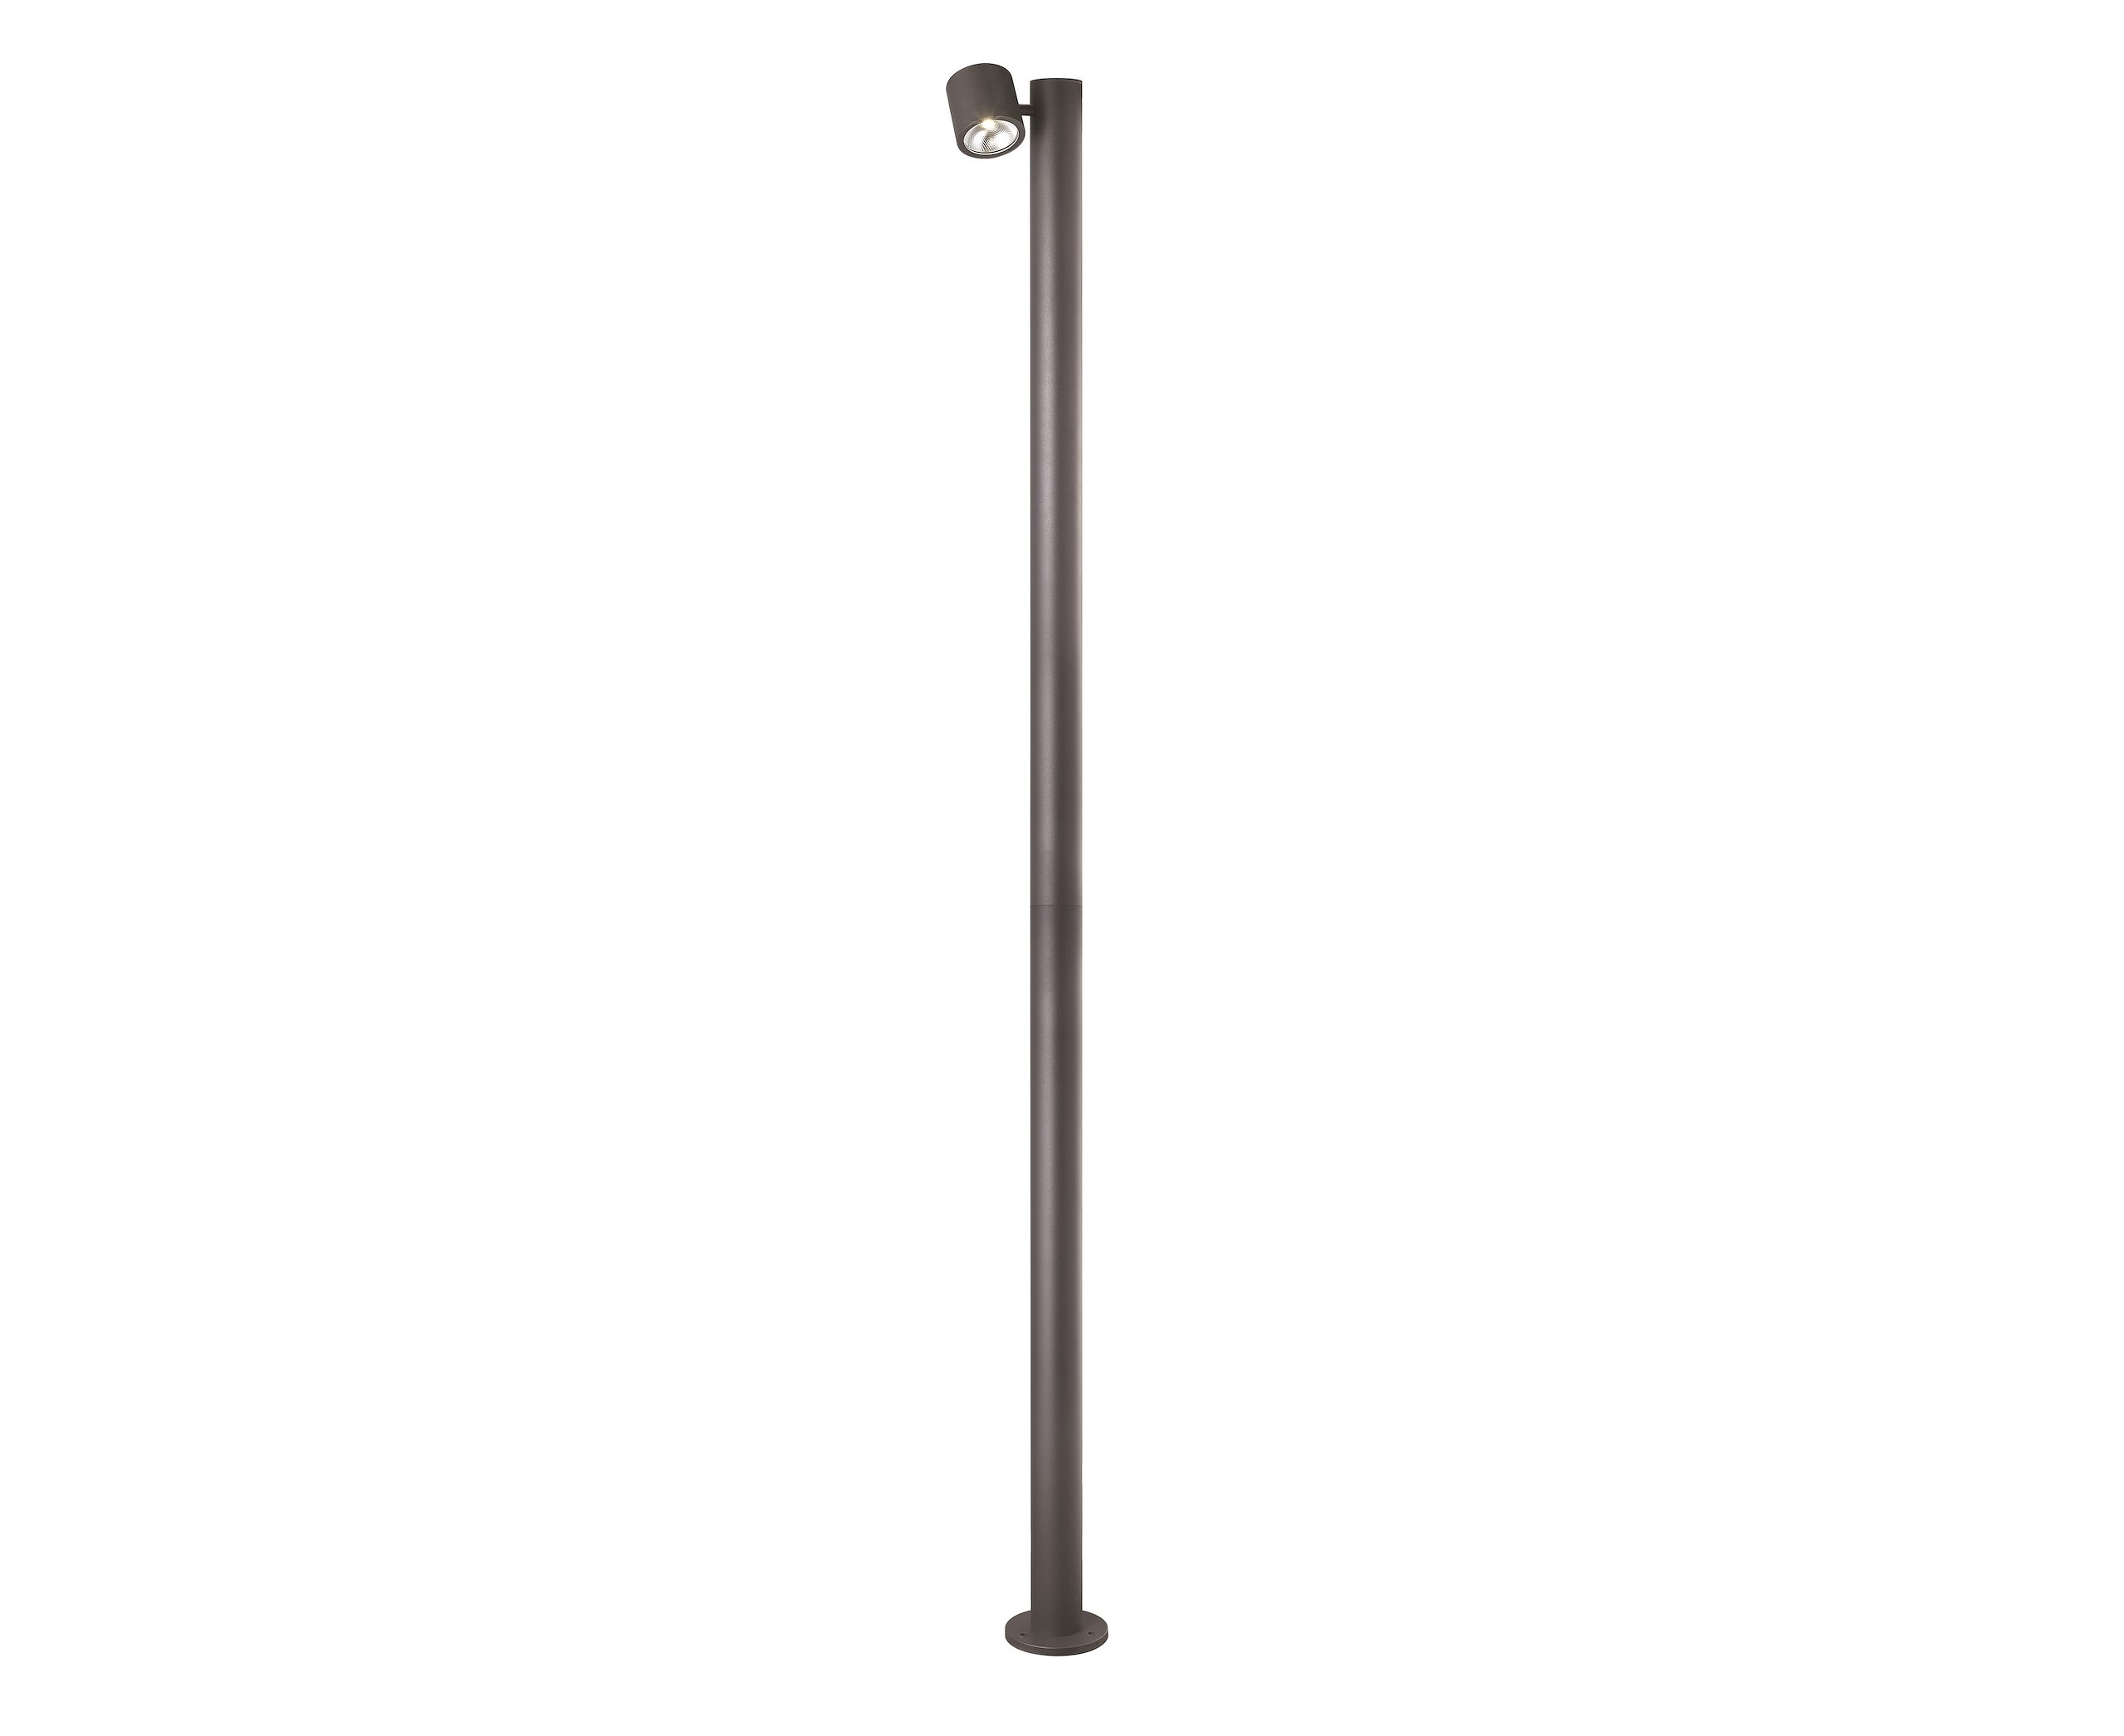 Malmbergs | LED Lamp | LAMP POST SPIRIT POLE I, 1X11W, IP54 | 220CM